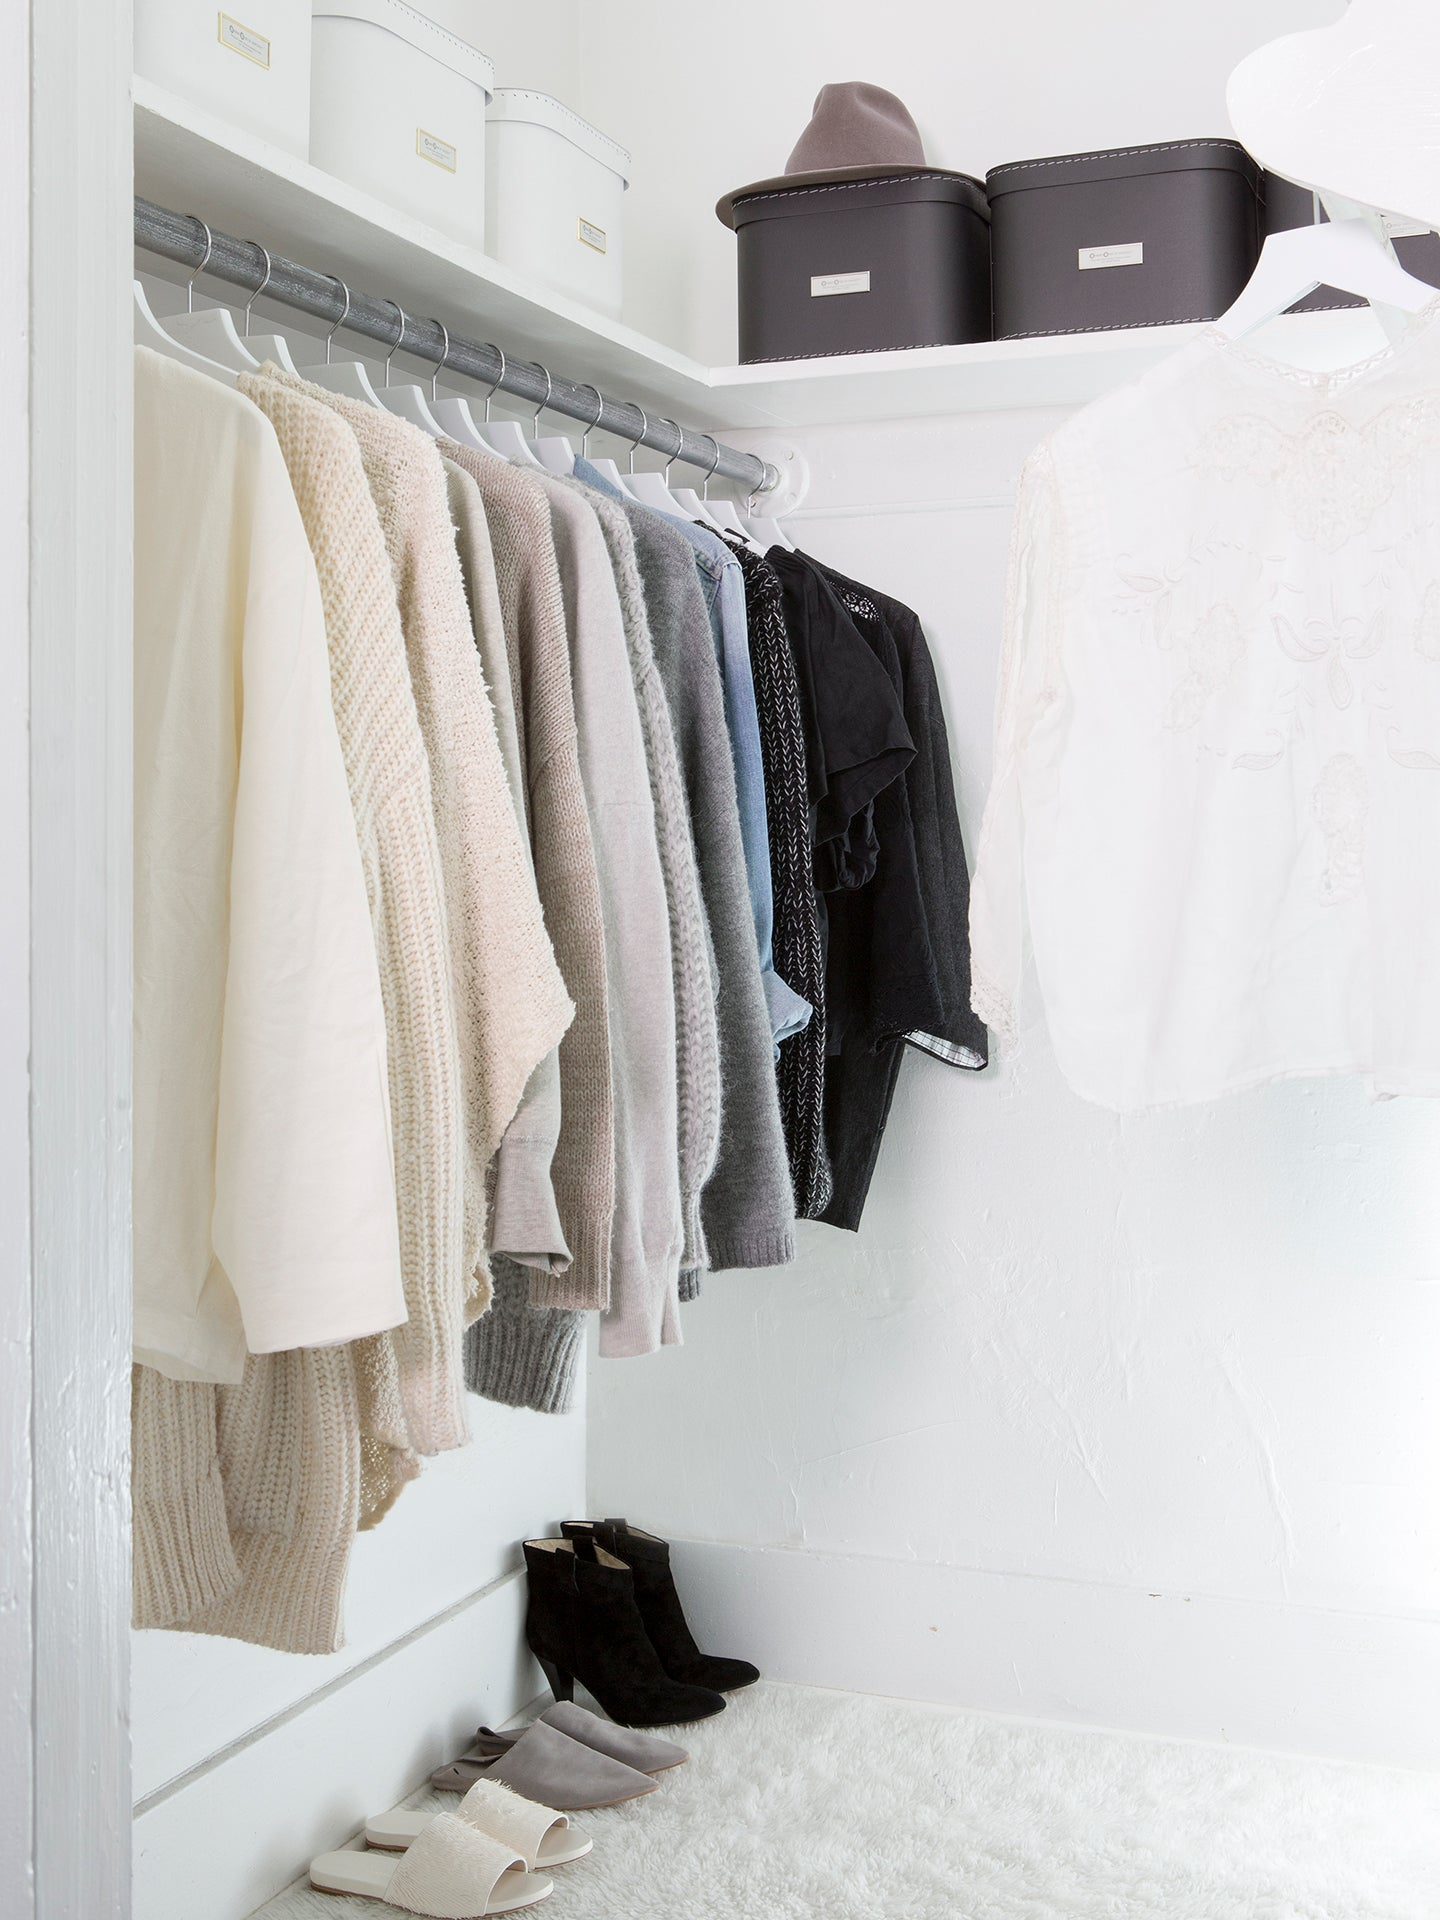 How to Organize a Closet Without Plastic, According to an Expert